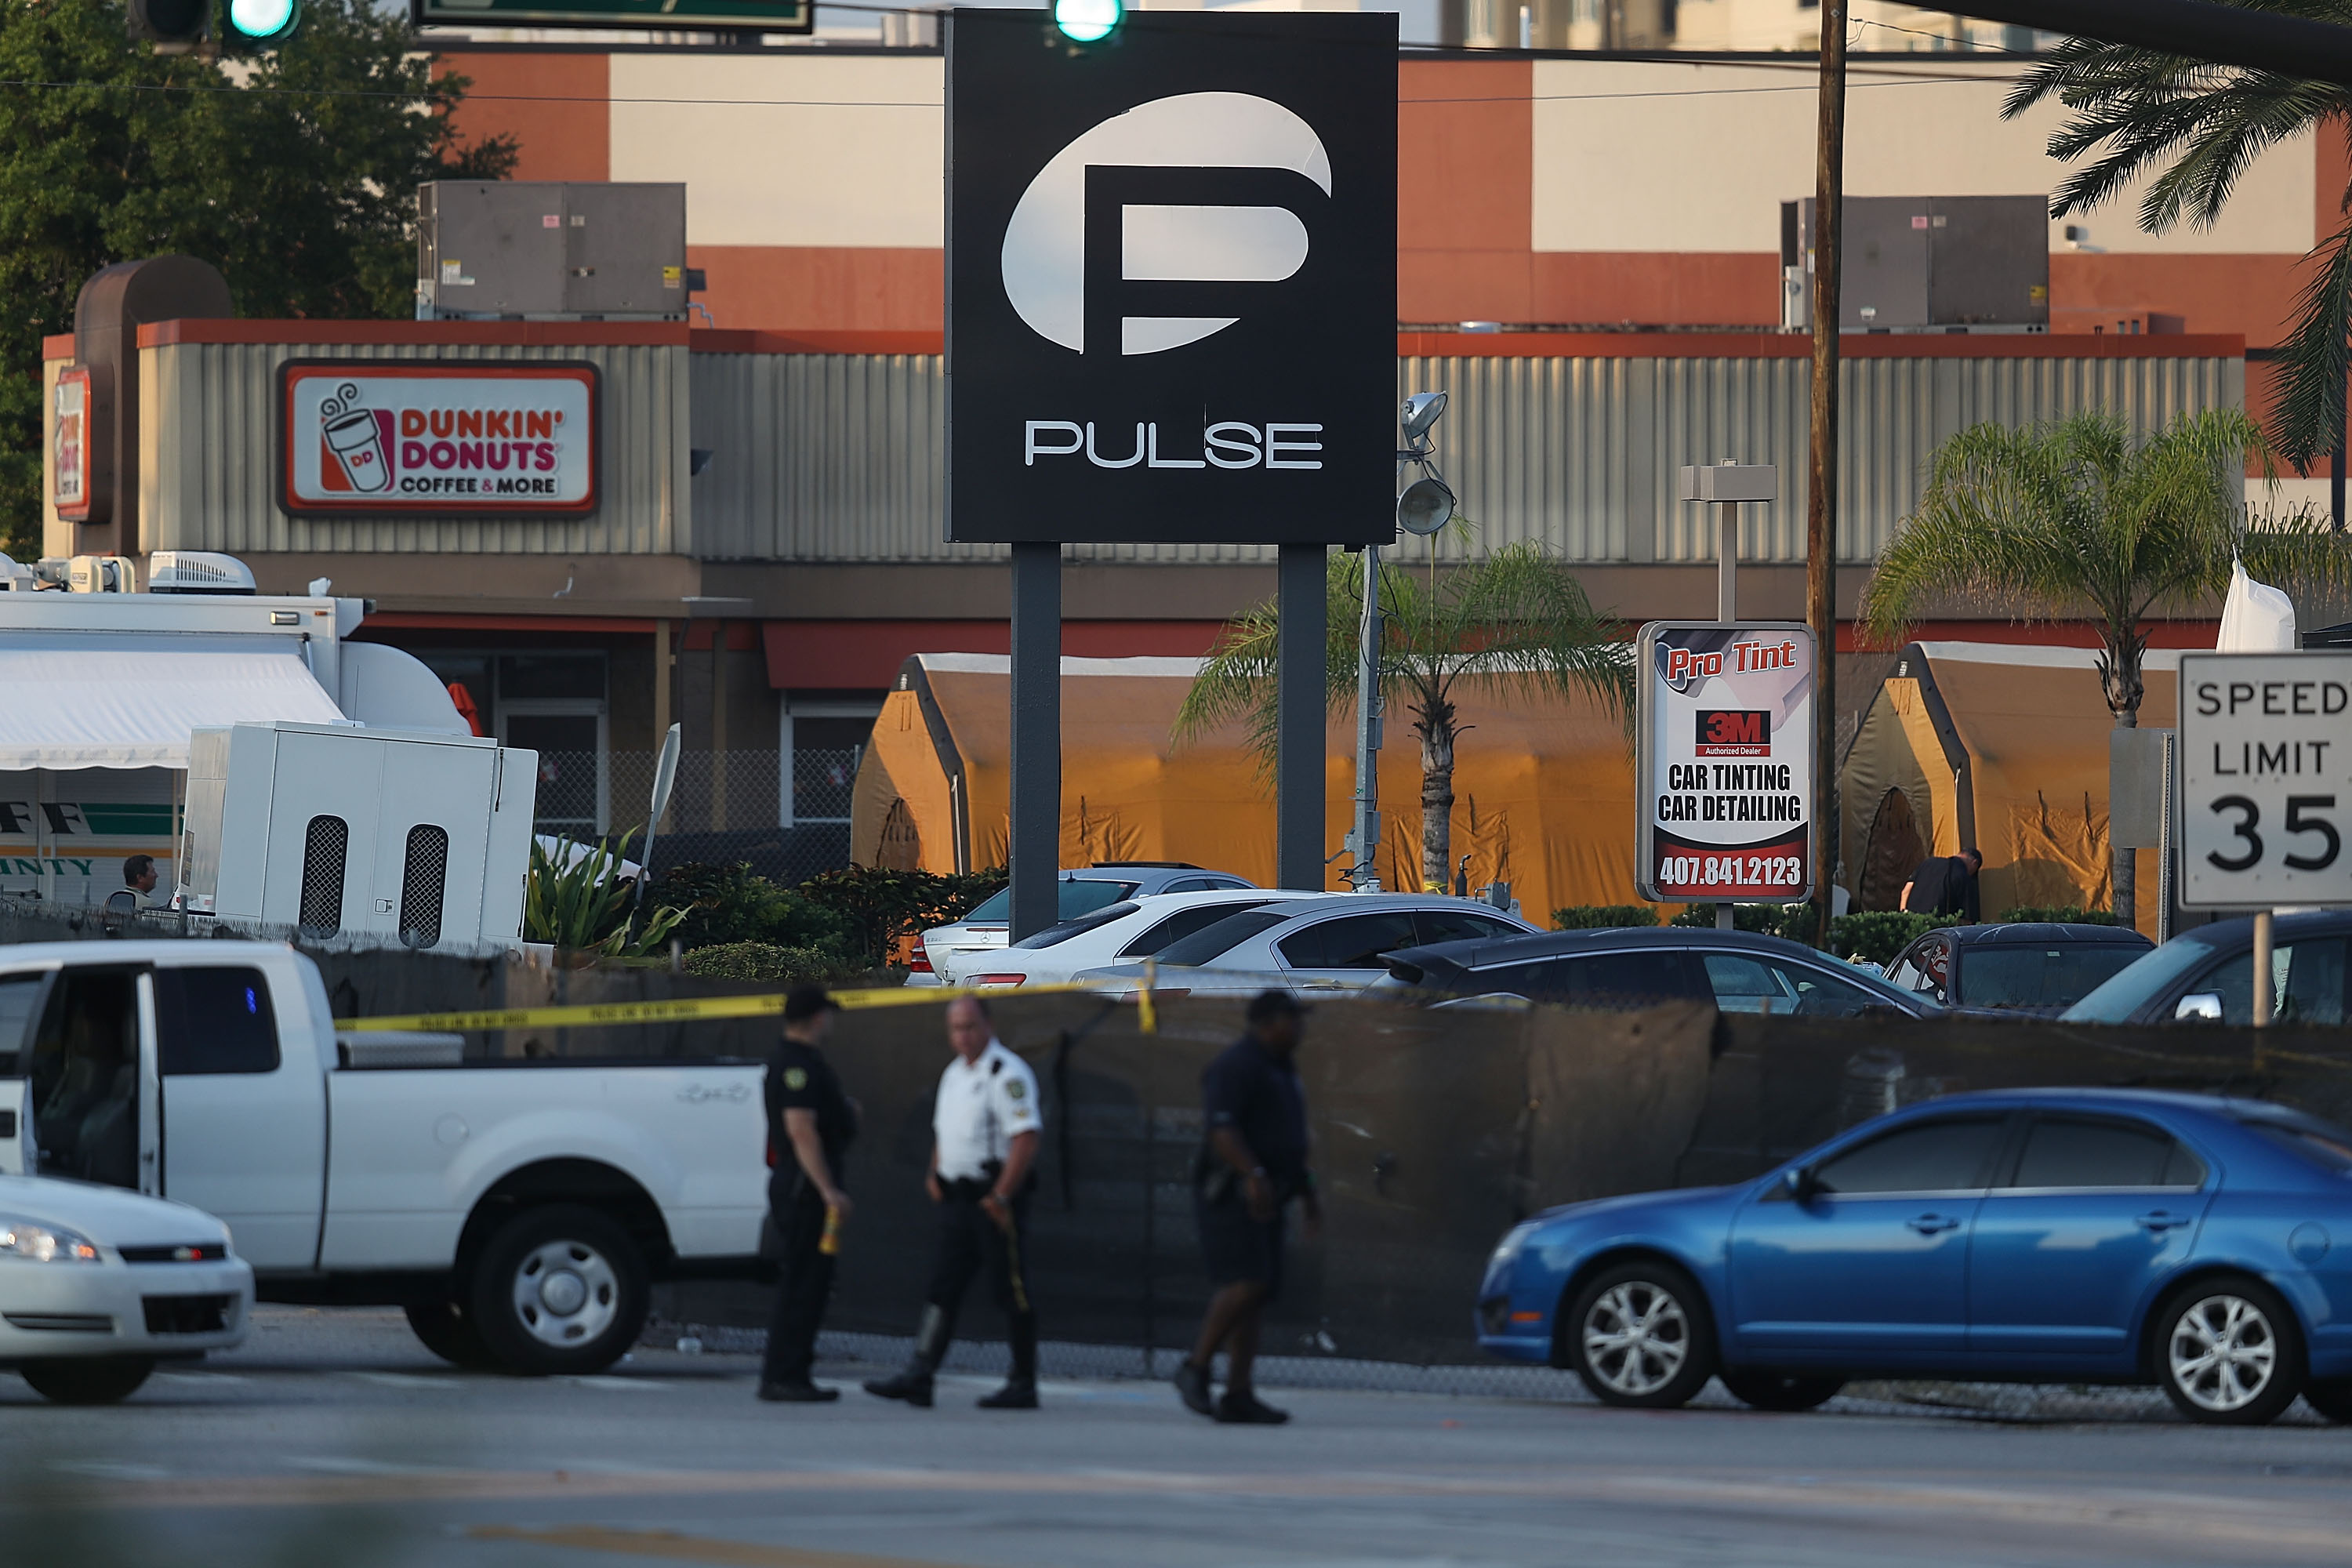 At Least 50 Dead In Mass Shooting At Gay Nightclub In Orlando